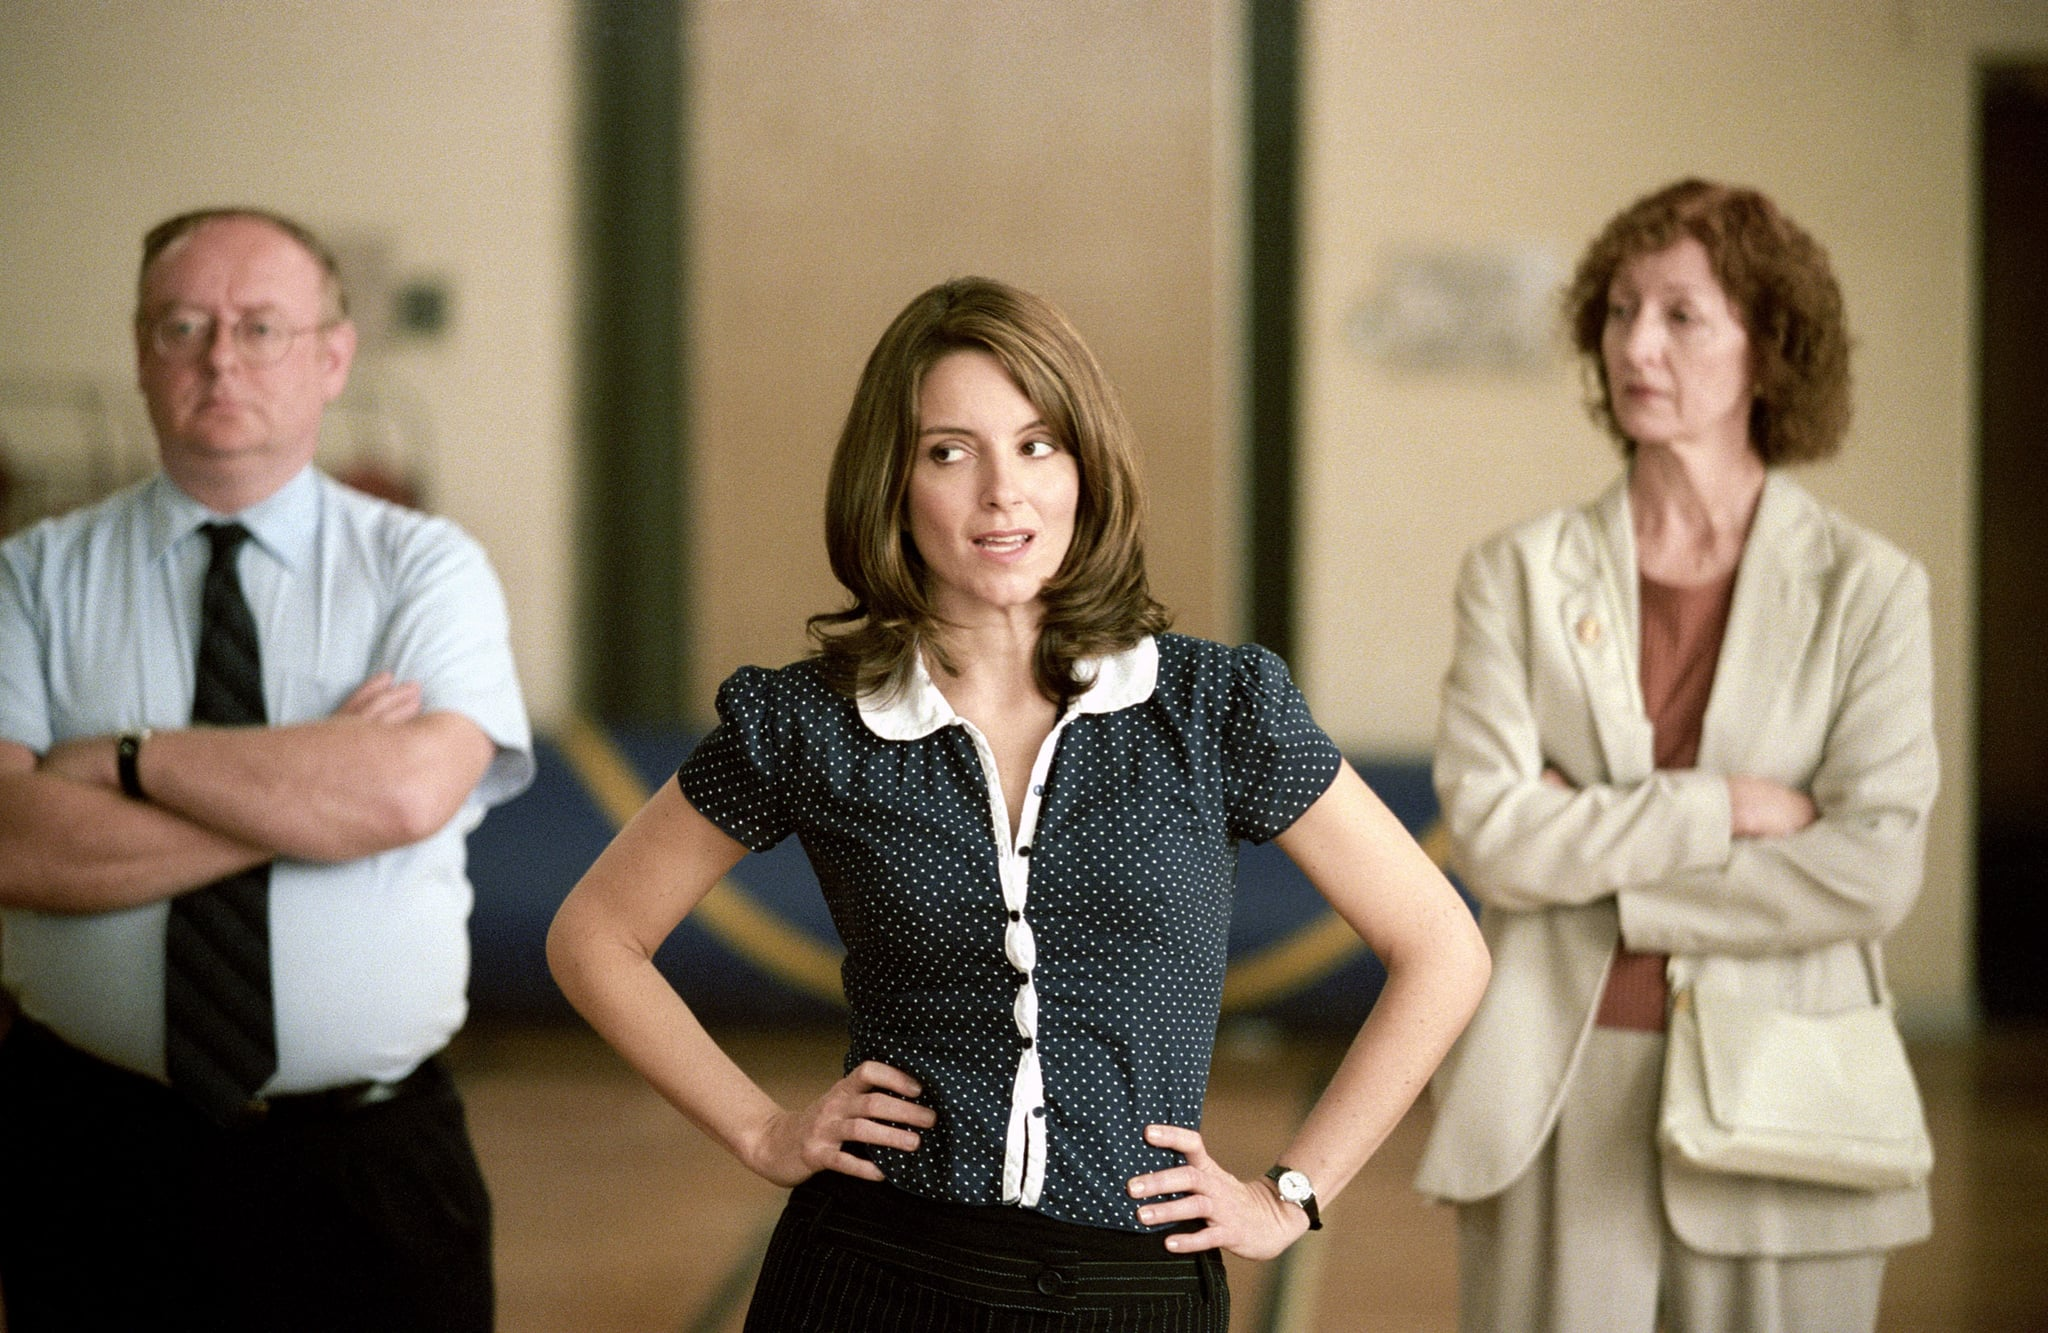 MEAN GIRLS, Tina Fey (foreground), 2004, (c) Paramount/courtesy Everett Collection